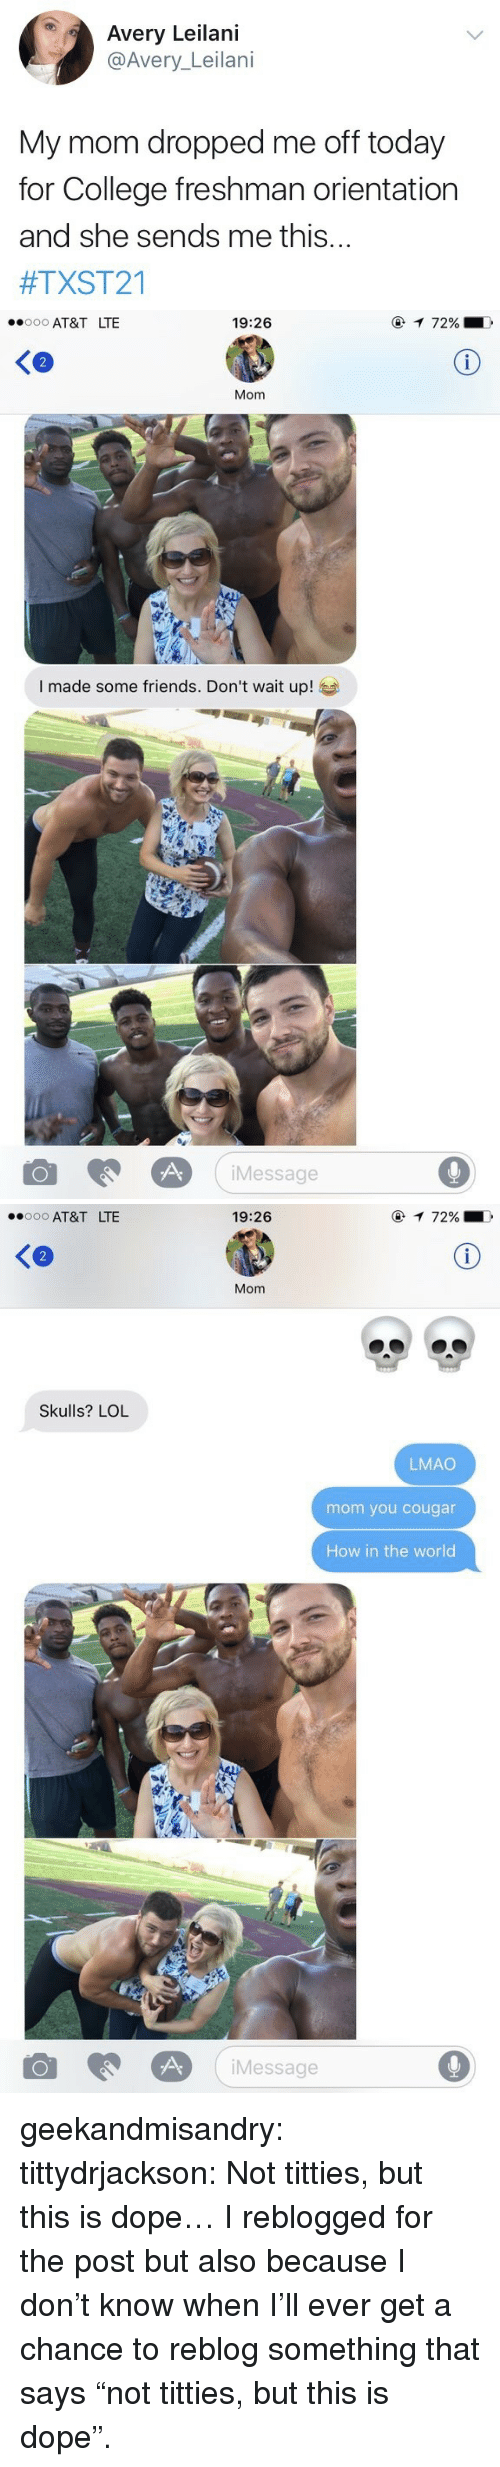 """cougar: Avery Leilani  @Avery_Leilani  My mom dropped me off today  for College freshman orientation  and she sends me this...  #TXST21   AT&T LTE  19:26  2  Mom  I made some friends. Don't wait up!  iMessage  9   AT&T LTE  19:26  Ke  Mom  Skulls? LOL  LMAO  mom you cougar  How in the world  Message  9 geekandmisandry:  tittydrjackson:  Not titties, but this is dope…  I reblogged for the post but also because I don't know when I'll ever get a chance to reblog something that says """"not titties, but this is dope""""."""